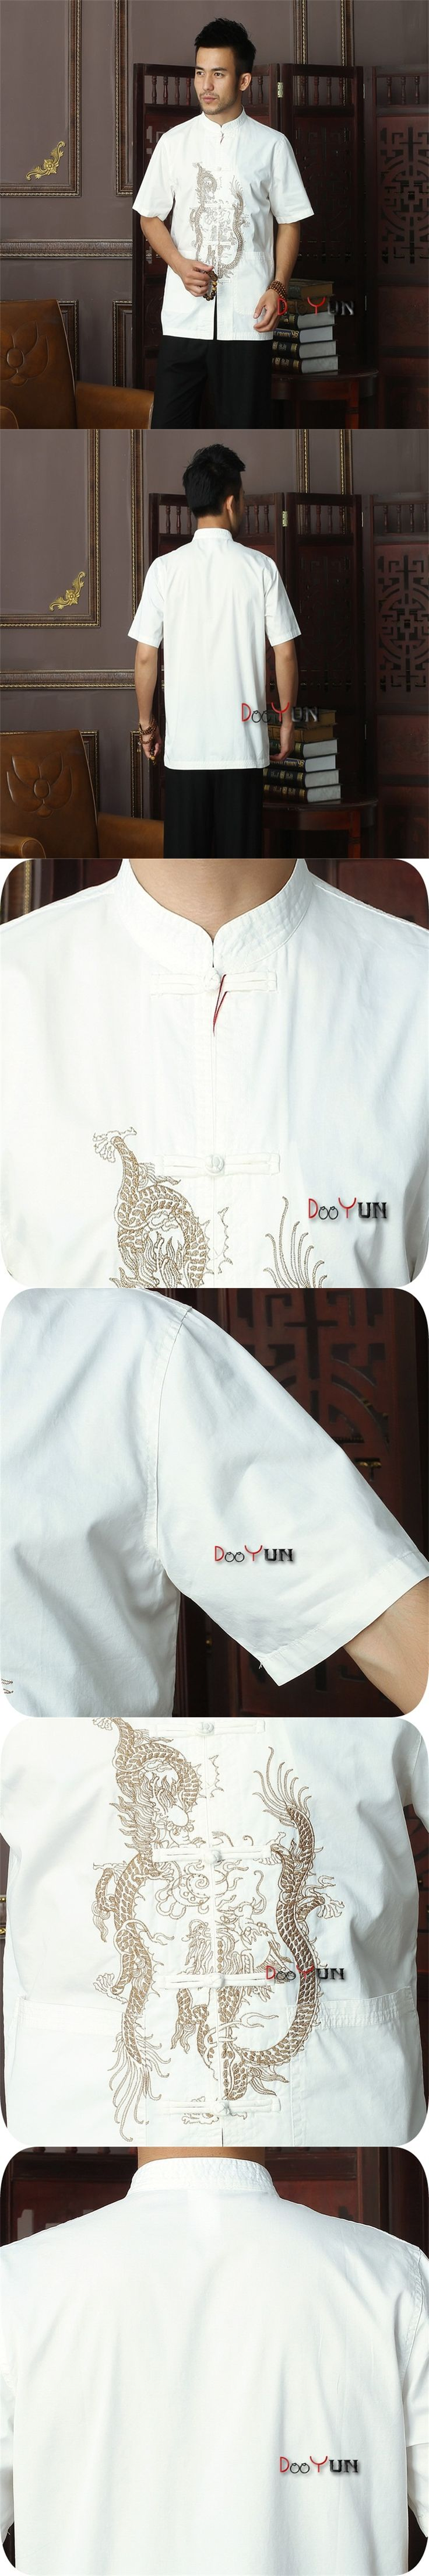 White Chinese Men's Cotton Kung Fu Shirt Top Novelty Embroidery Tang Suit Mandarin Collar Clothing Size S M L XL XXL XXXL